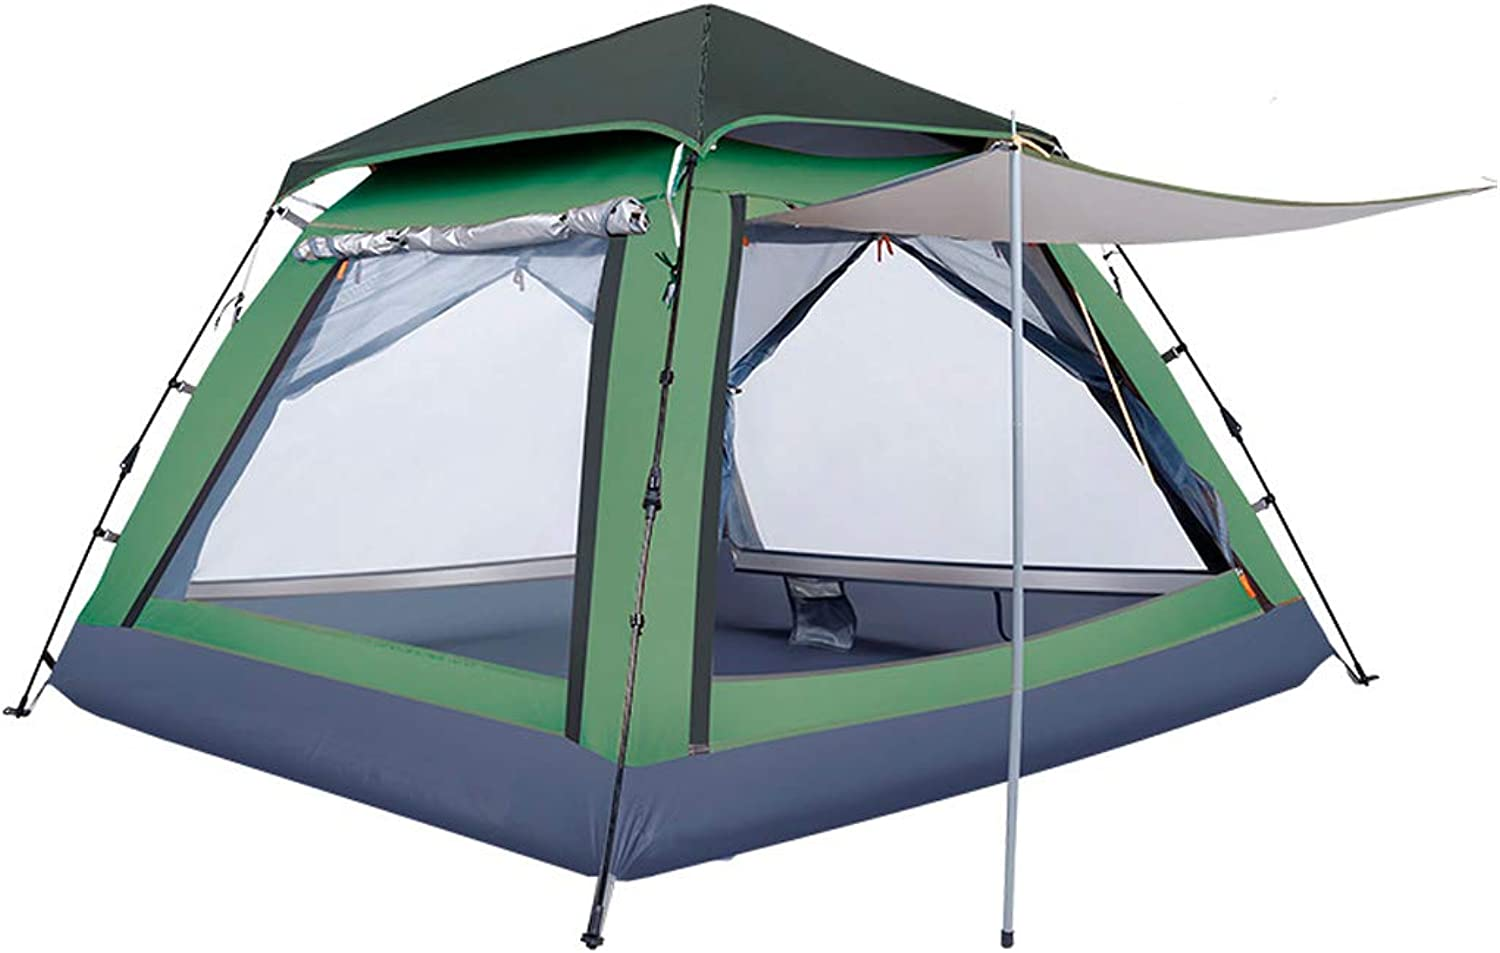 Hengtongtongxun Camping Tent, Outdoor Awning, Dome, Easy to Install (Suitable for 3-4 People), Latest Styles